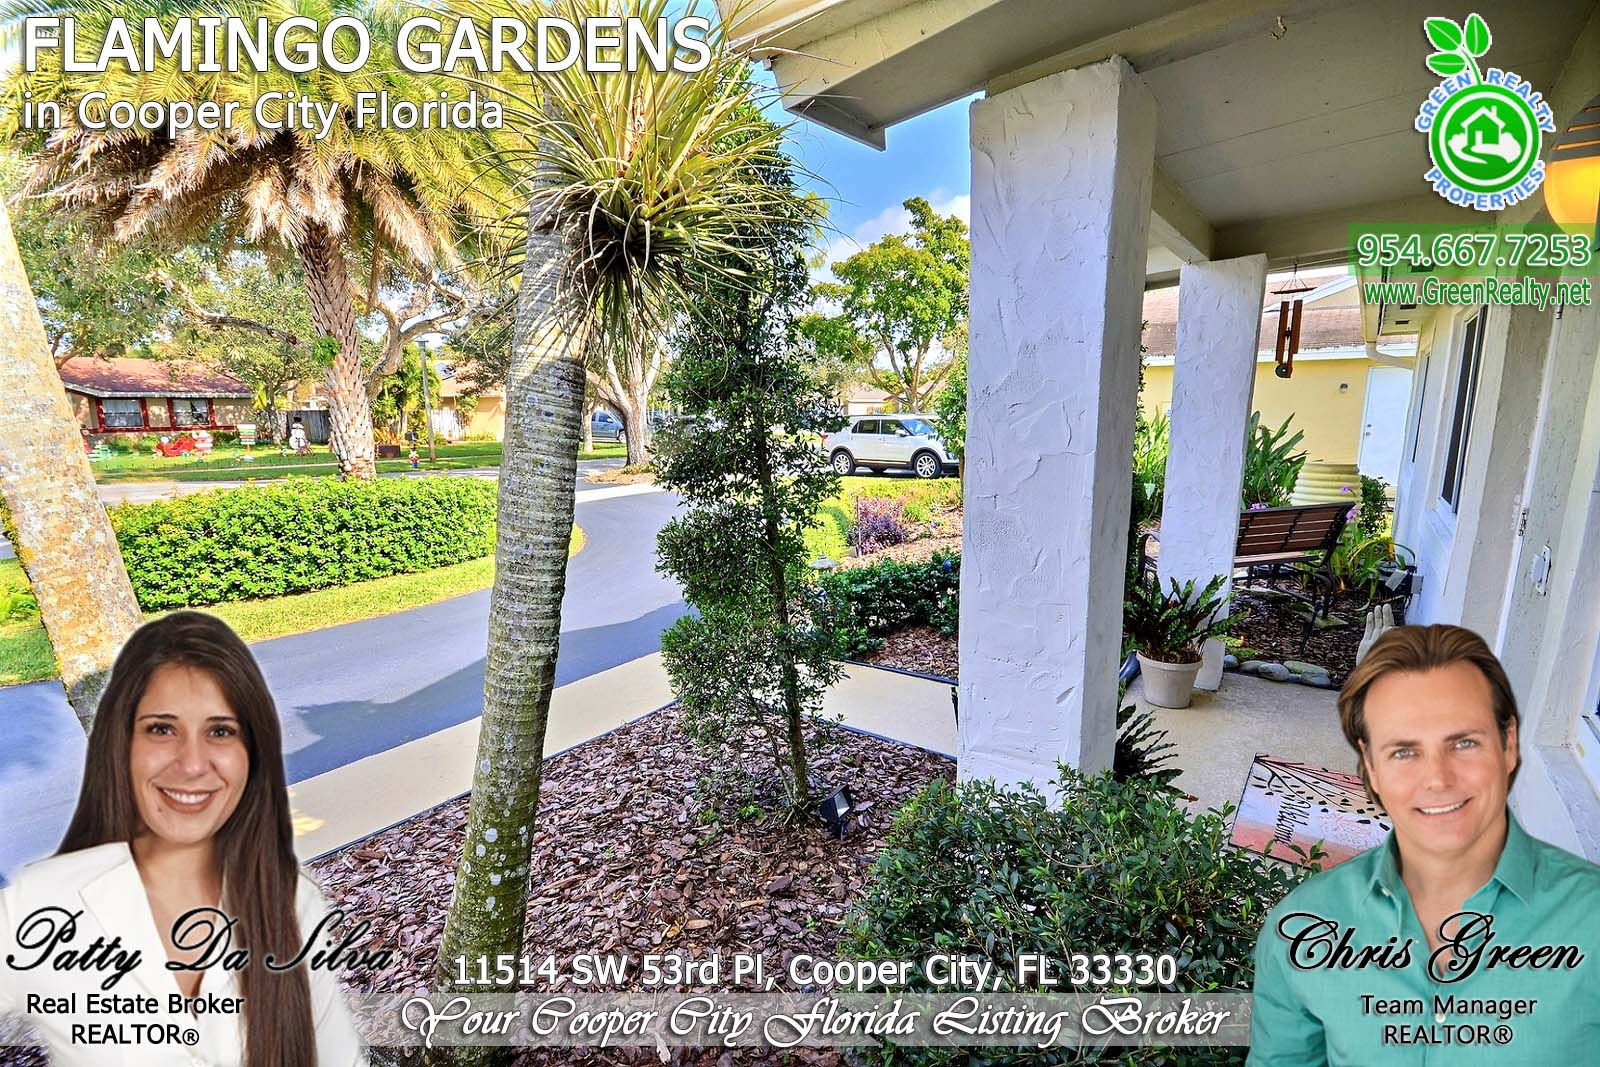 36 Flamingo Gardens Cooper City Homes For Sale (16)